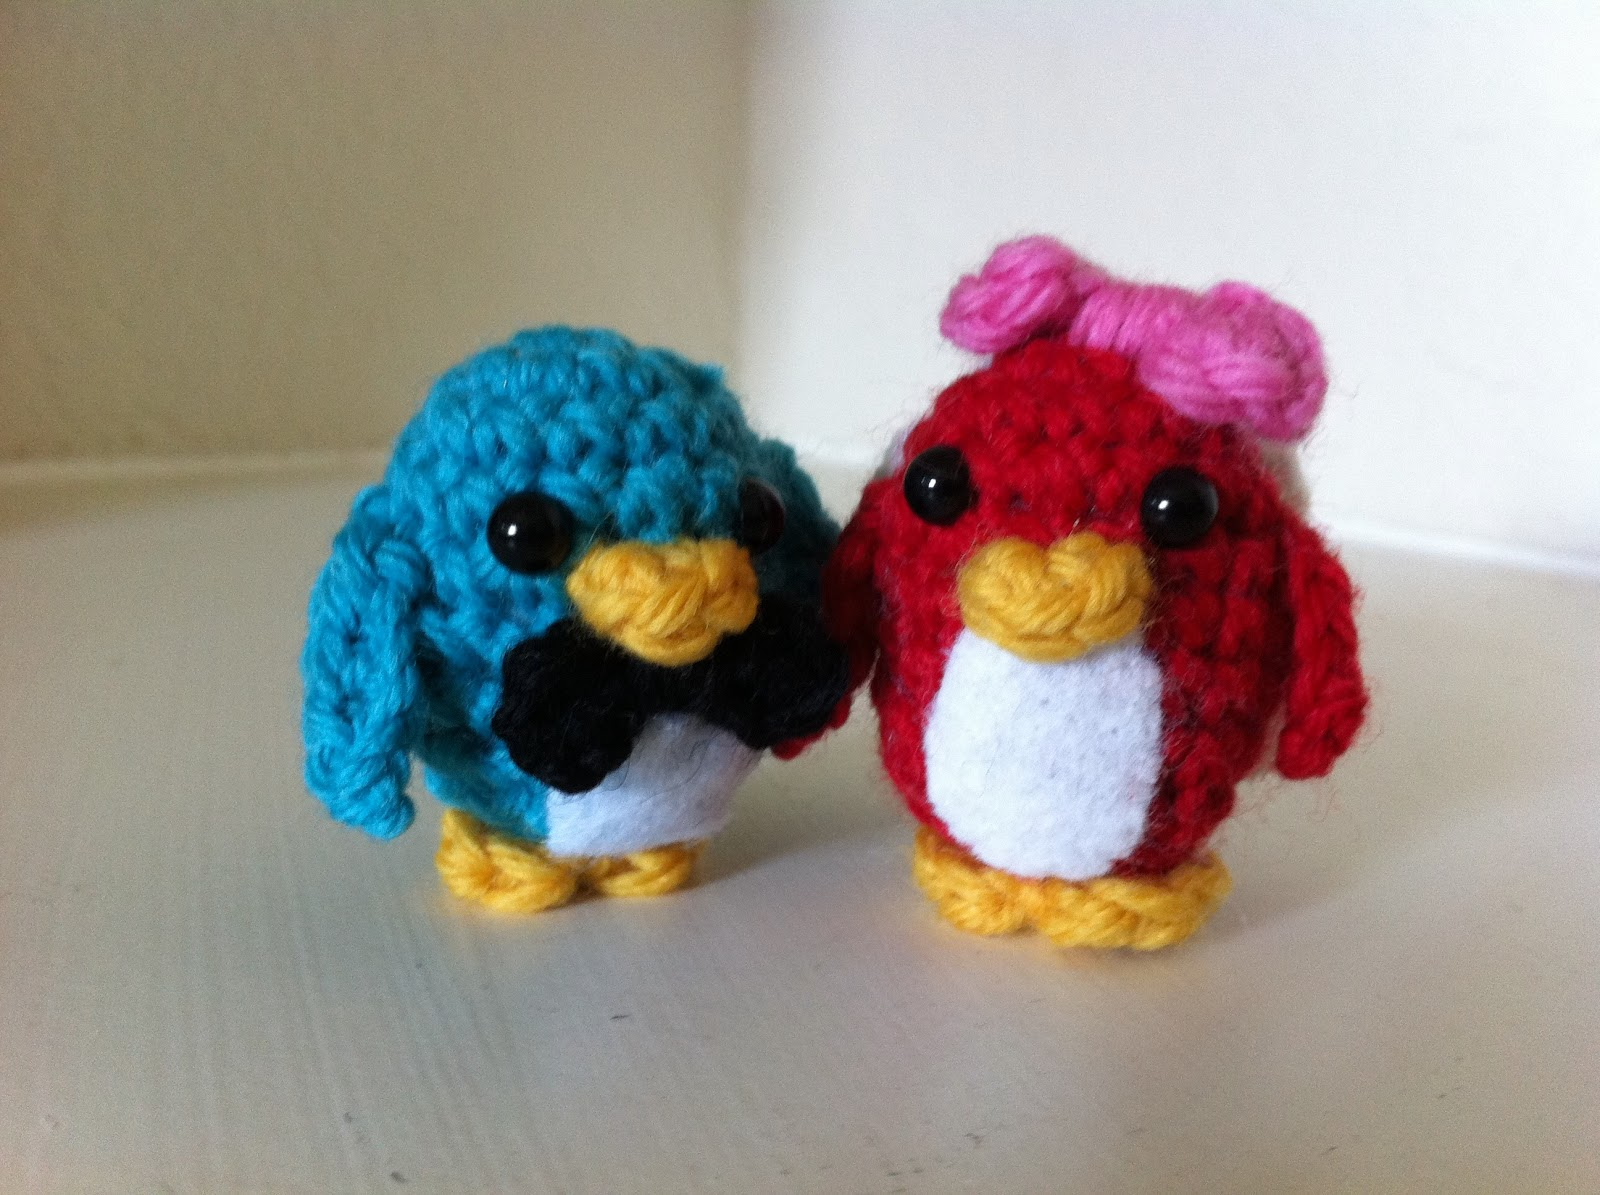 Crochet Pattern Free Penguin : Free crochet patterns: Nesting Penguins ~ Craft , handmade ...